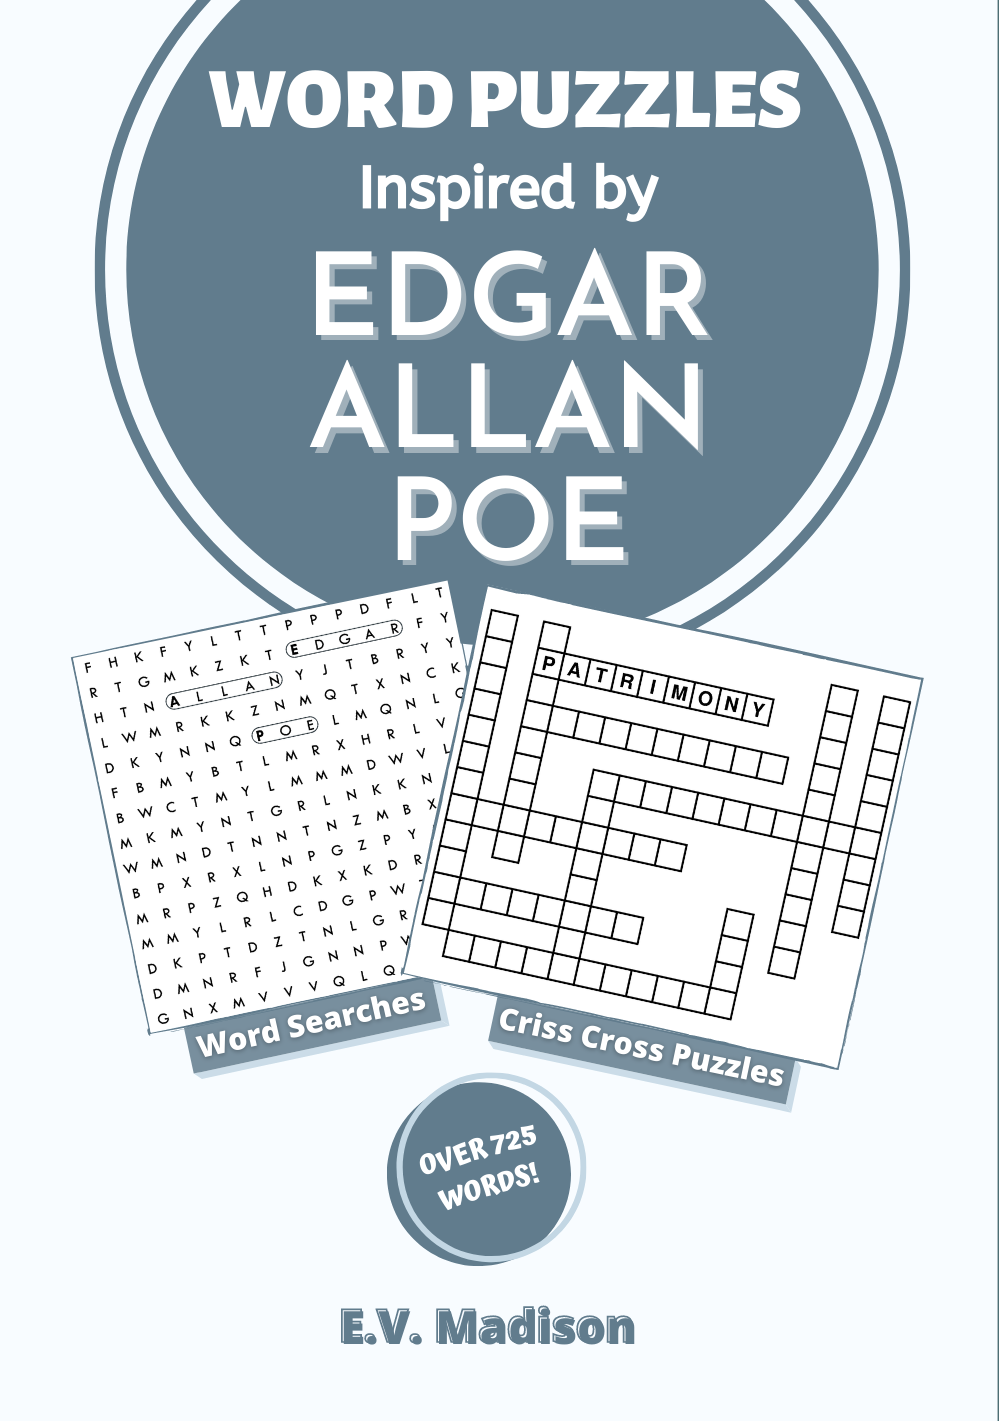 Word Puzzles Inspired by Edgar Allan Poe